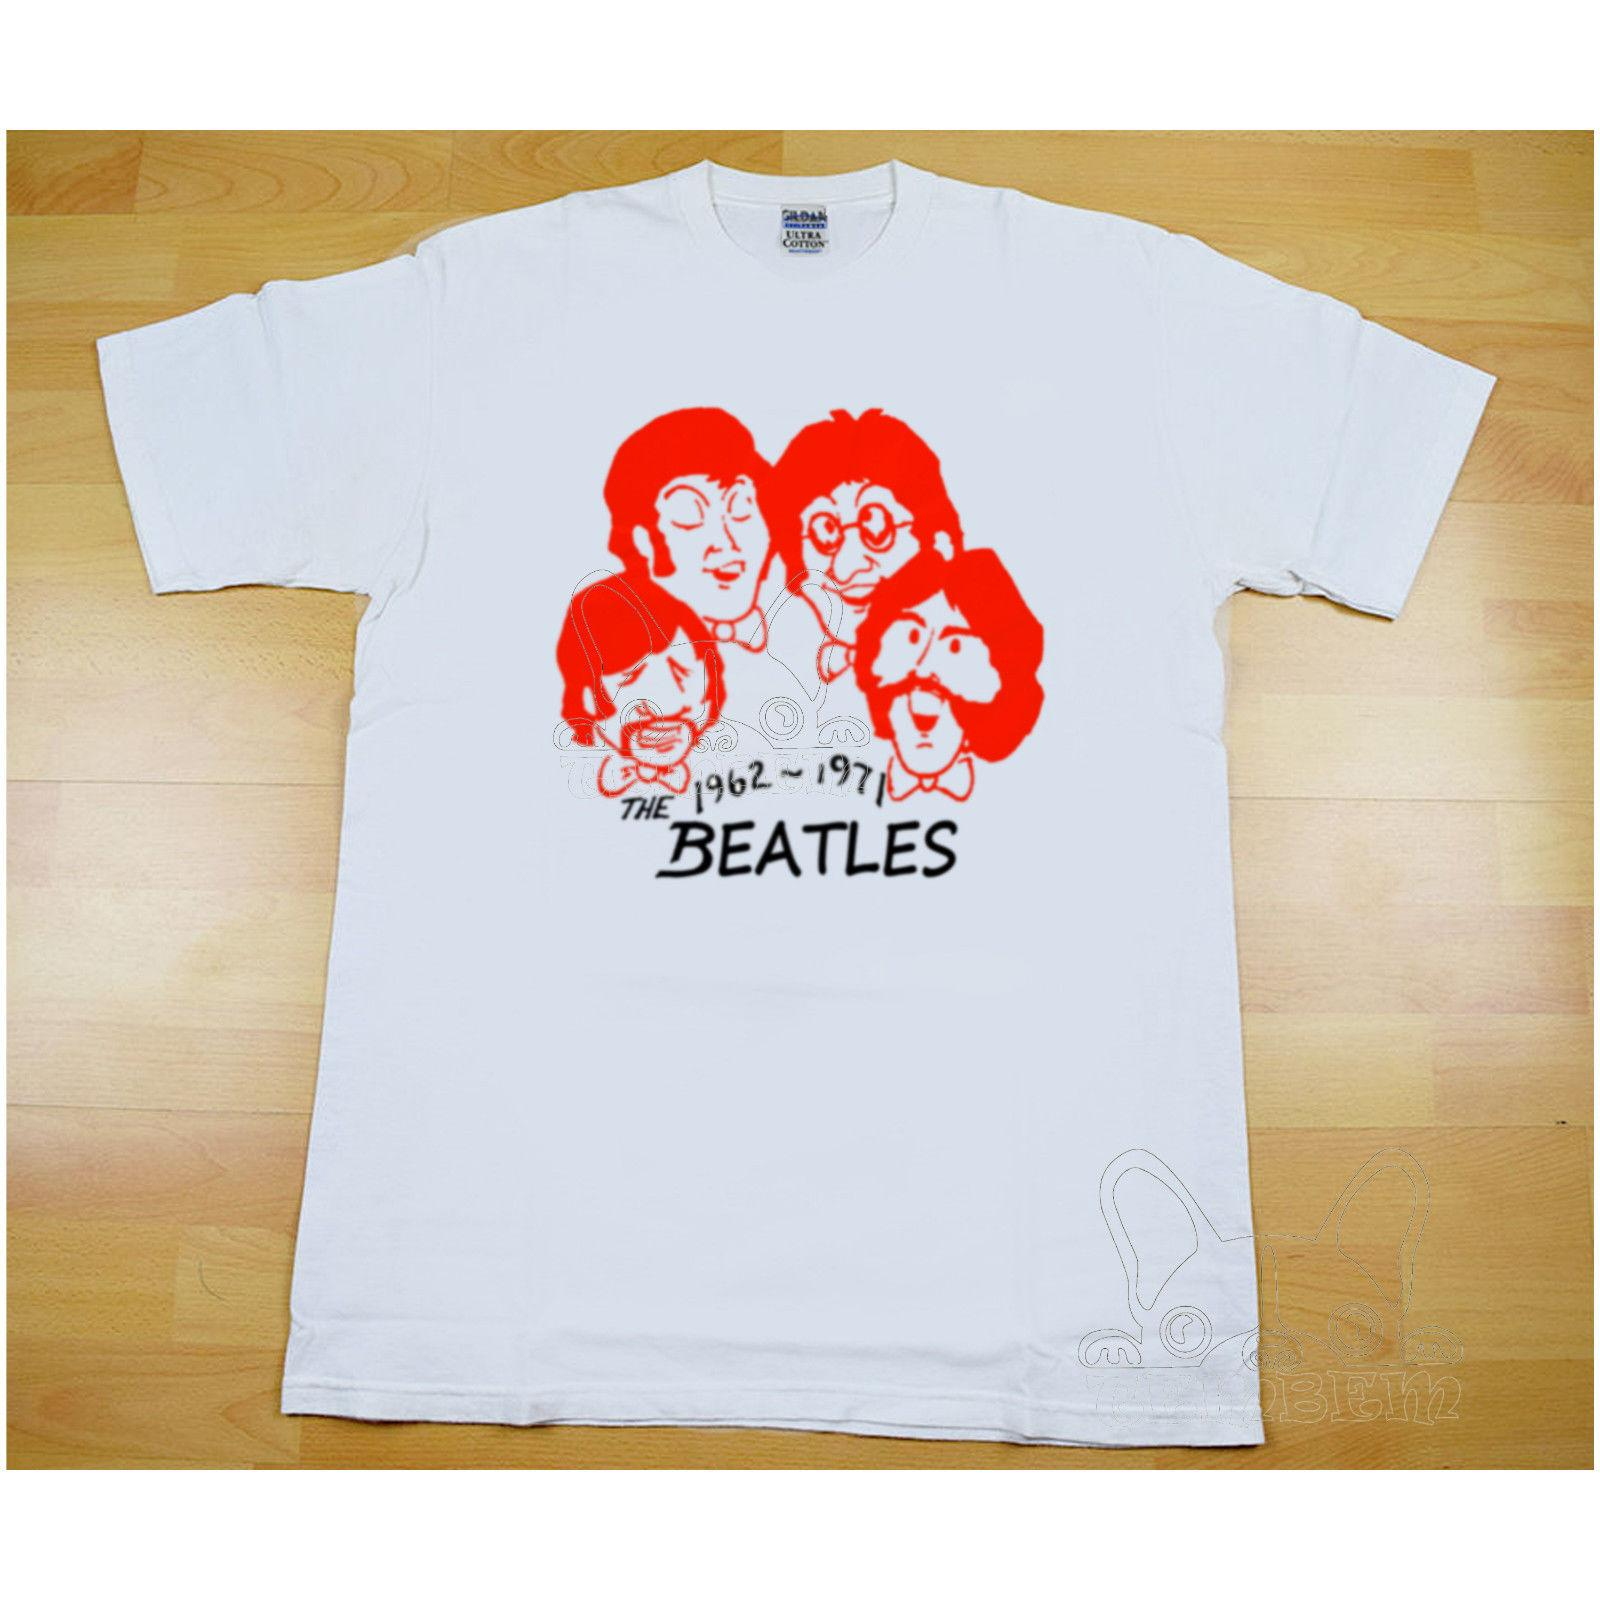 9866ee3fe4 VINTAGE 70s THE BEATLES T Shirt John Lennon Rock Tour Concert REPRINT New  High Quality T Shirt Summer Style Awesome T Shirts Cotton Shirts From ...